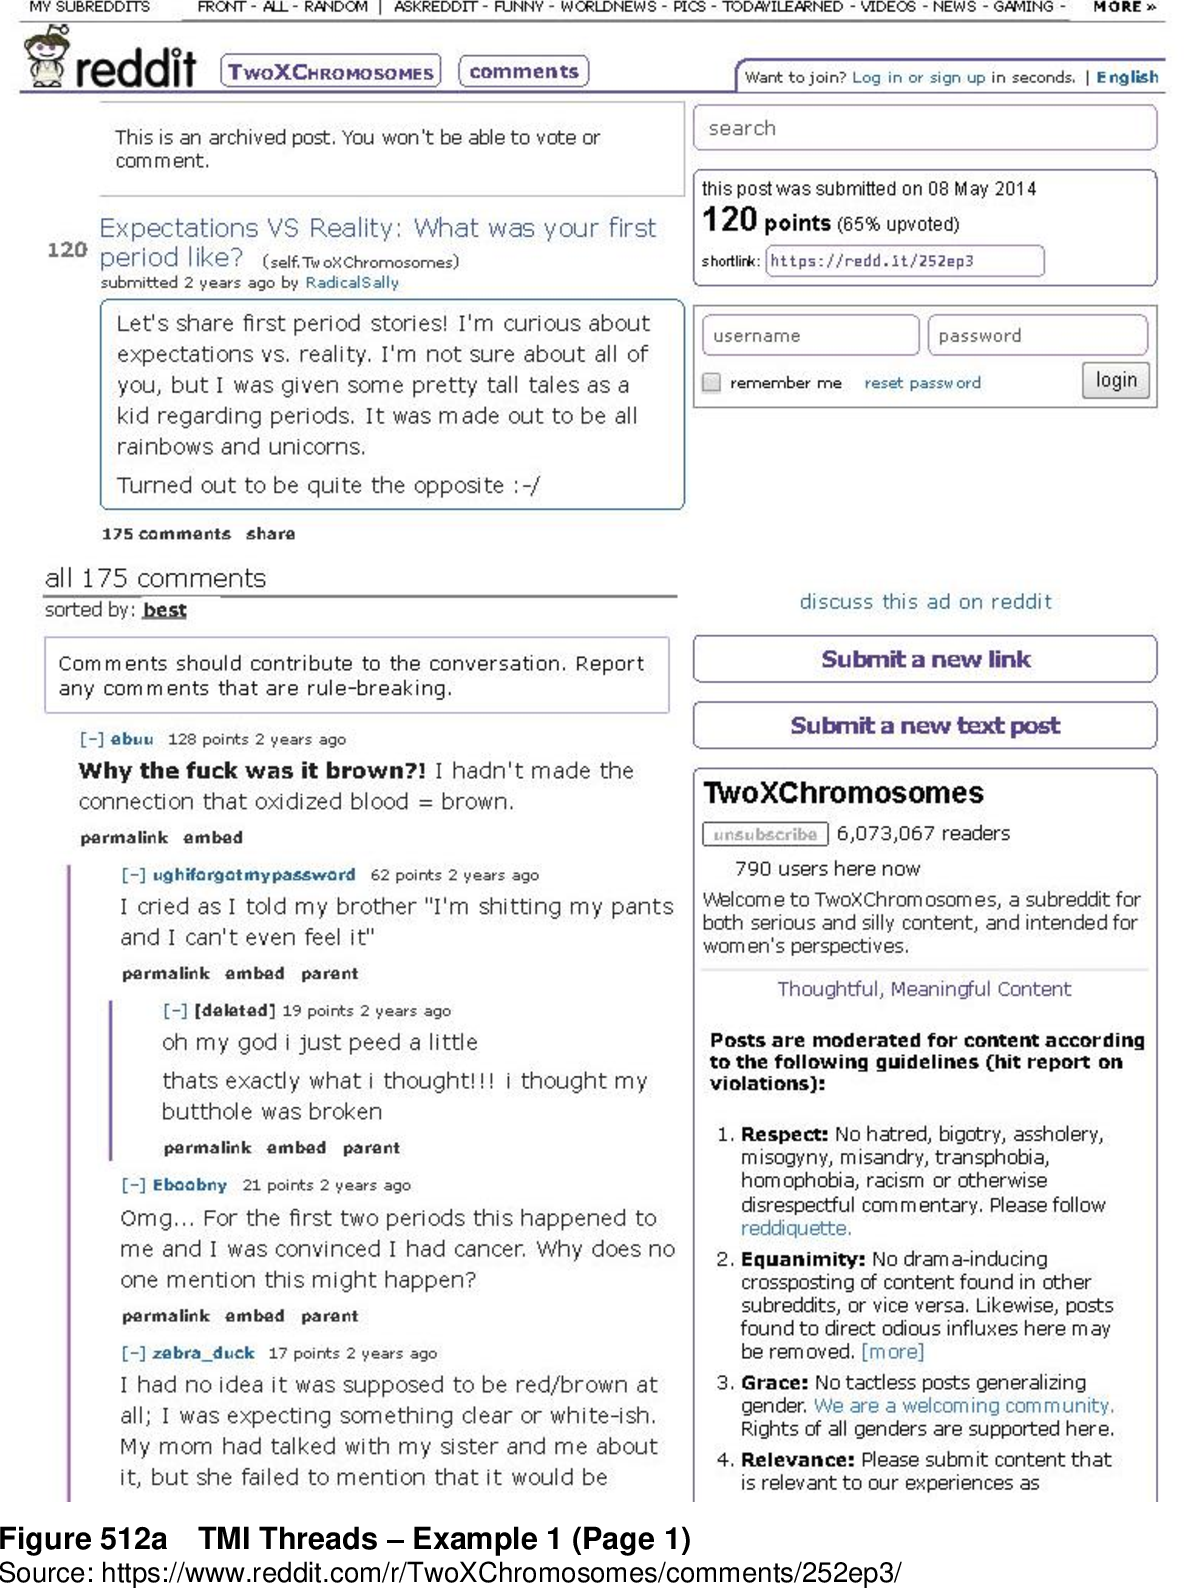 PDF] Oppression in the Reddit Hivemind: Tracing Patterns of